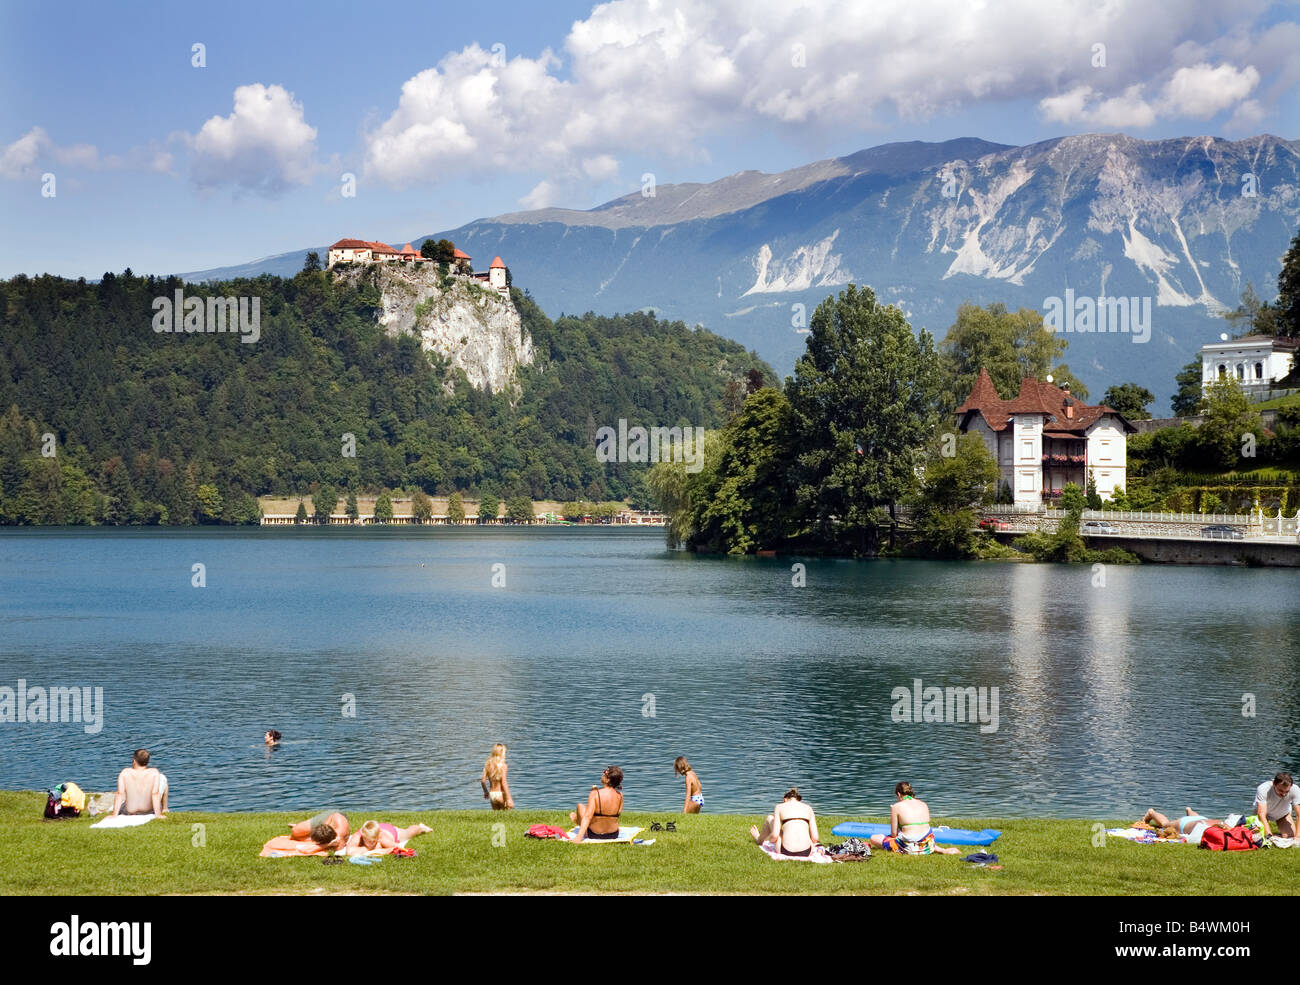 Lake Bled Republic of Slovenia Europe People bathing and sunning on the banks of the lake - Stock Image